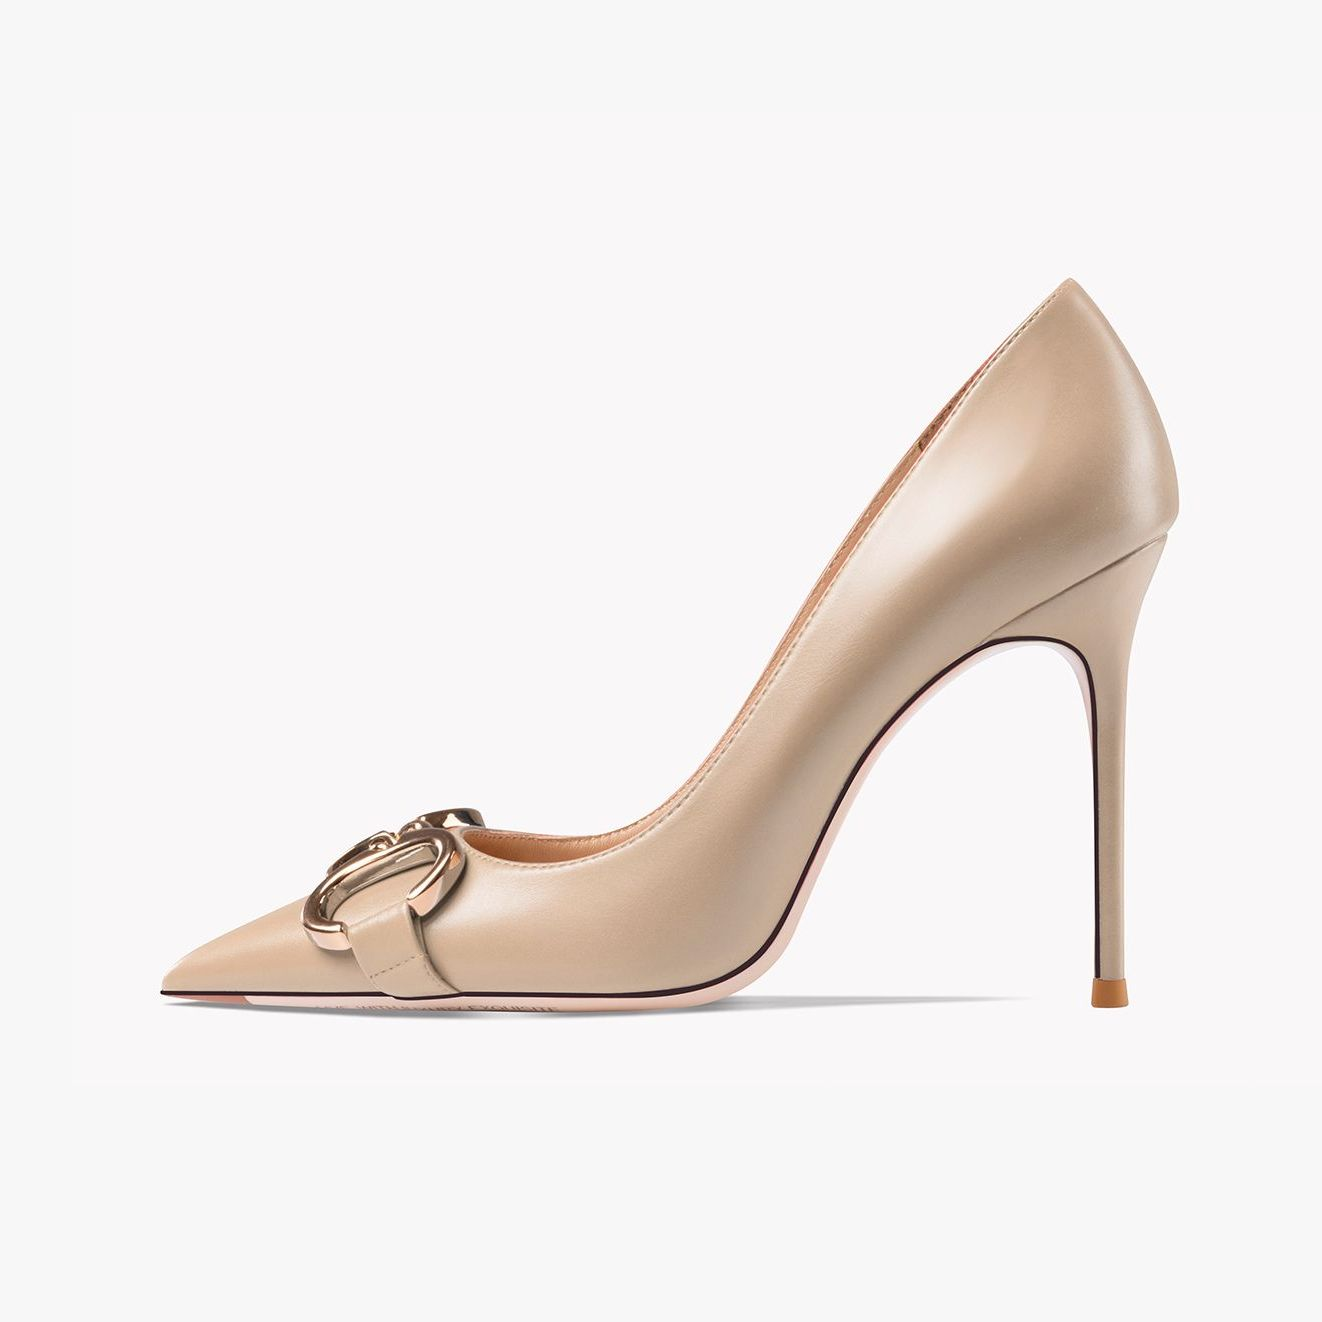 Real Leather Metal Button Women's Shoes Luxury Brand High Heels Office Ladies Stiletto Pumps Sexy We